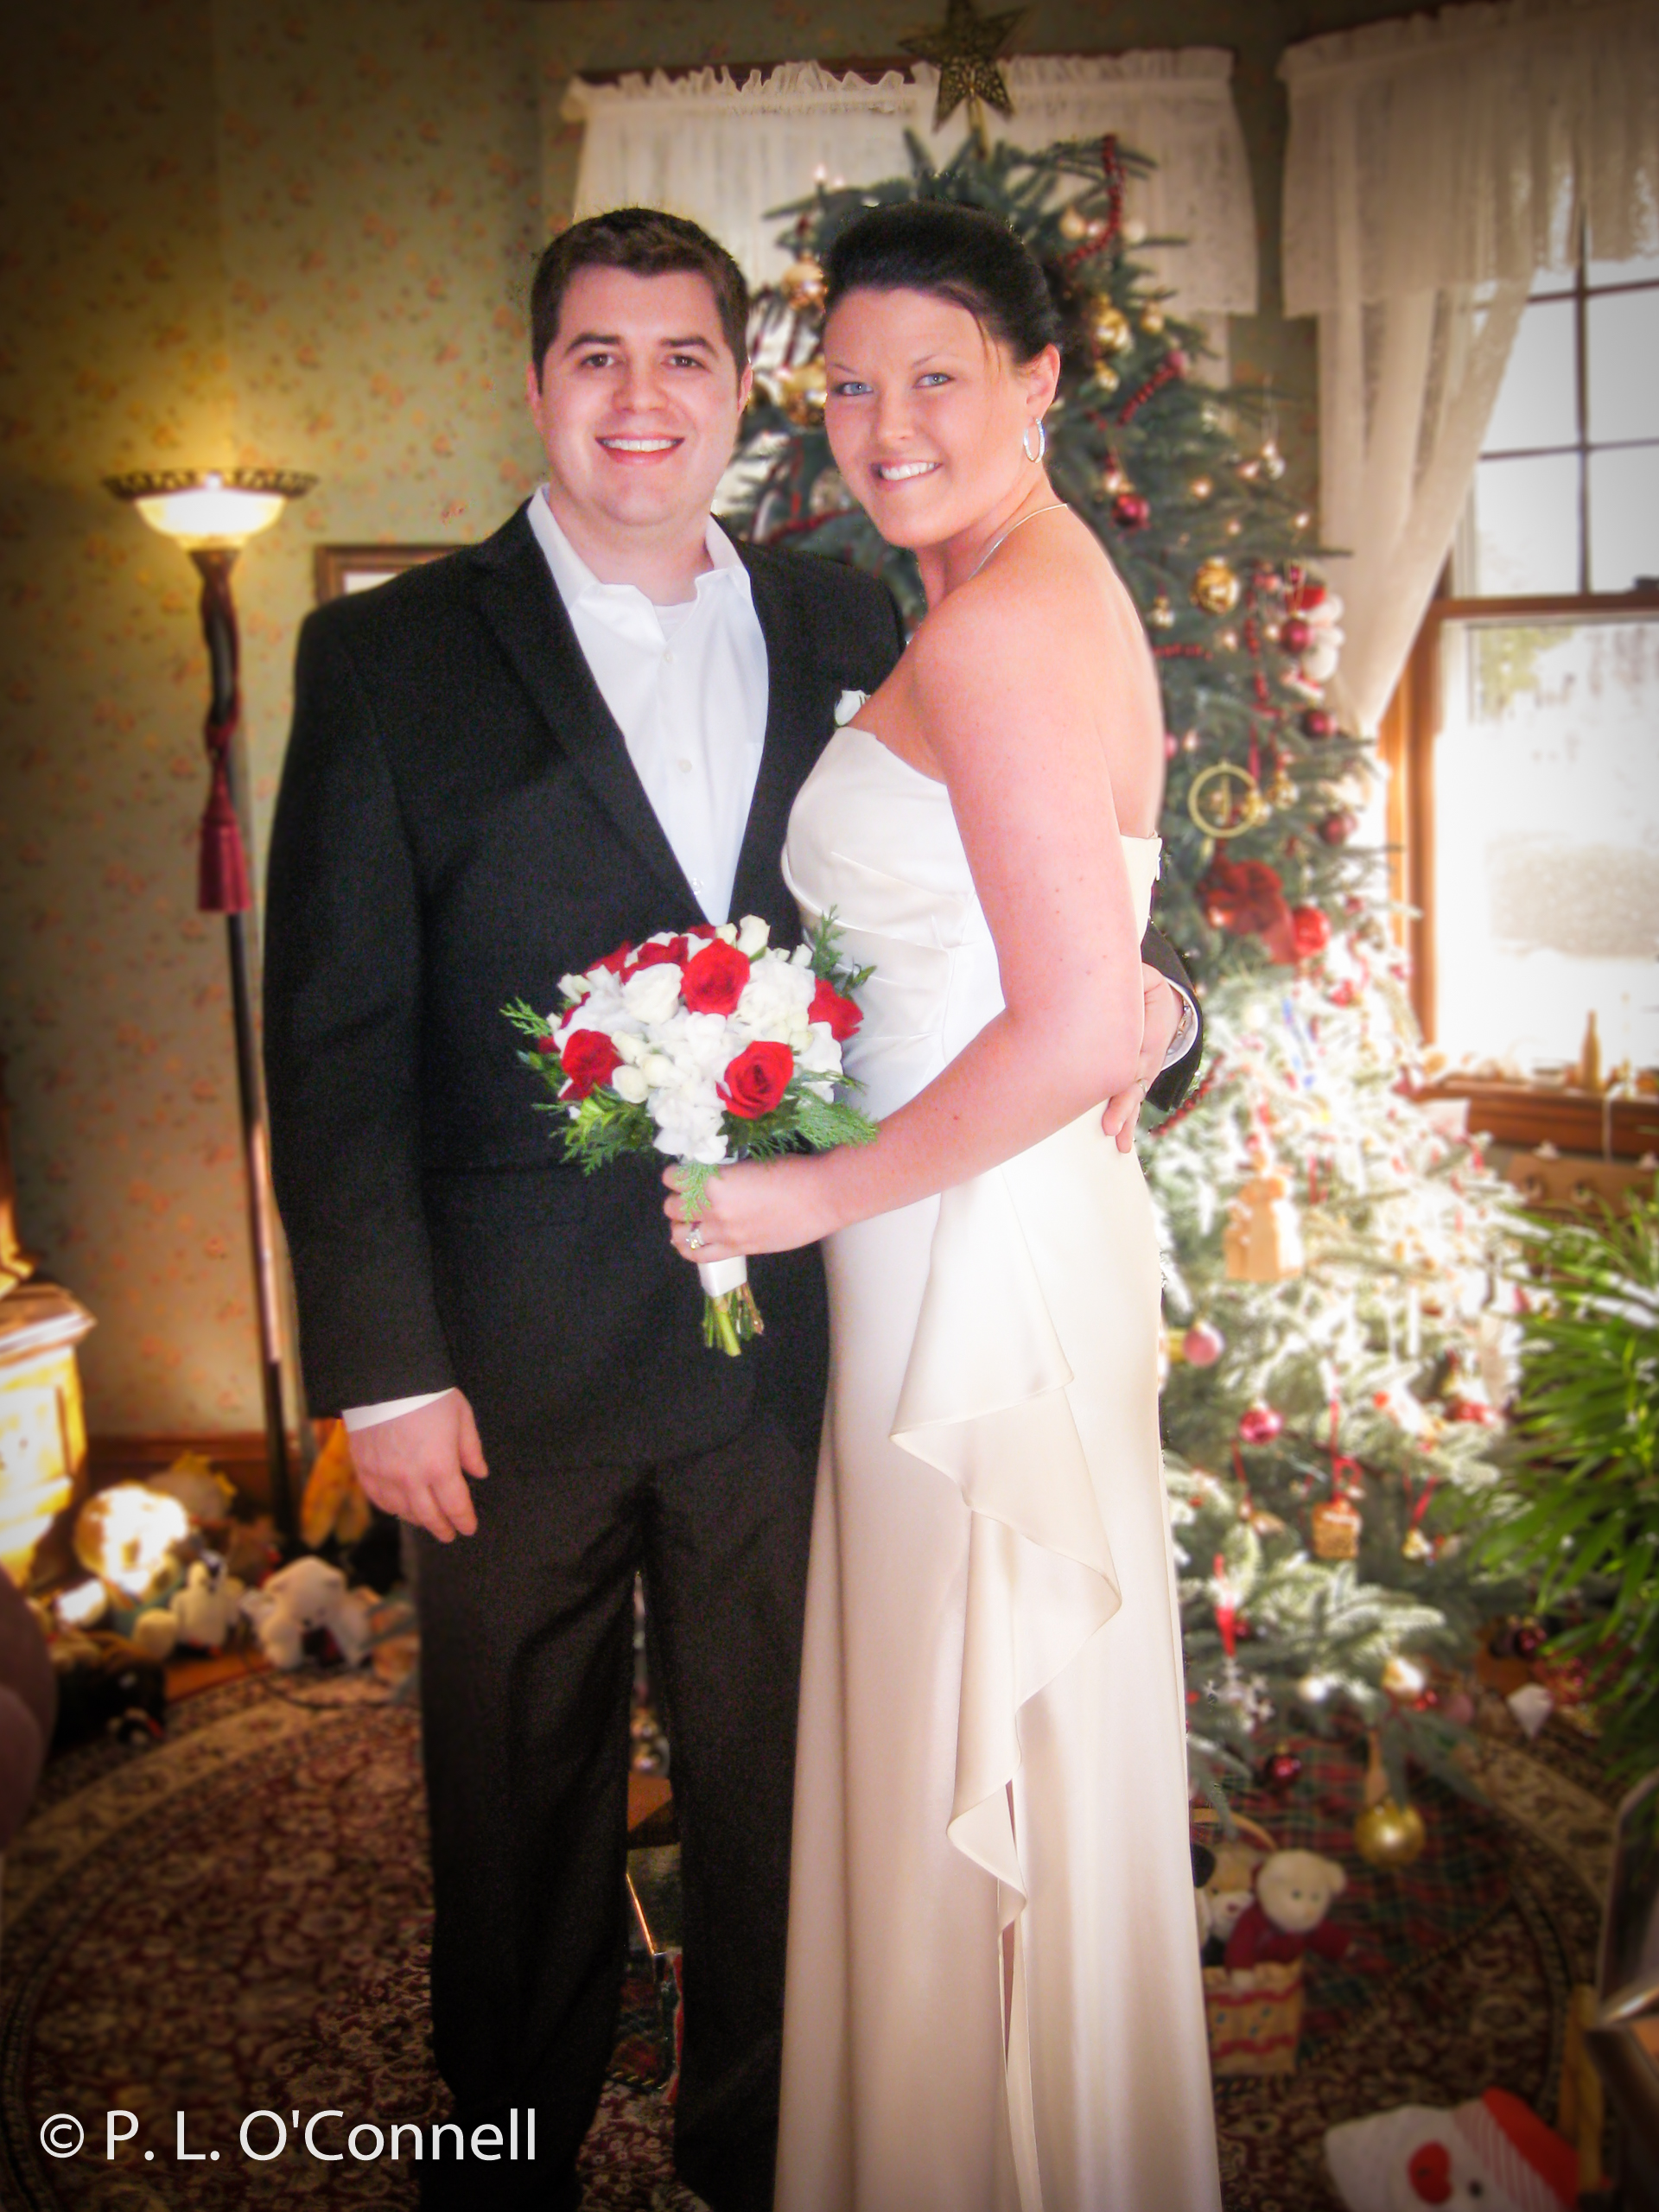 Winter weddings on Cape Cod by the Christmas tree